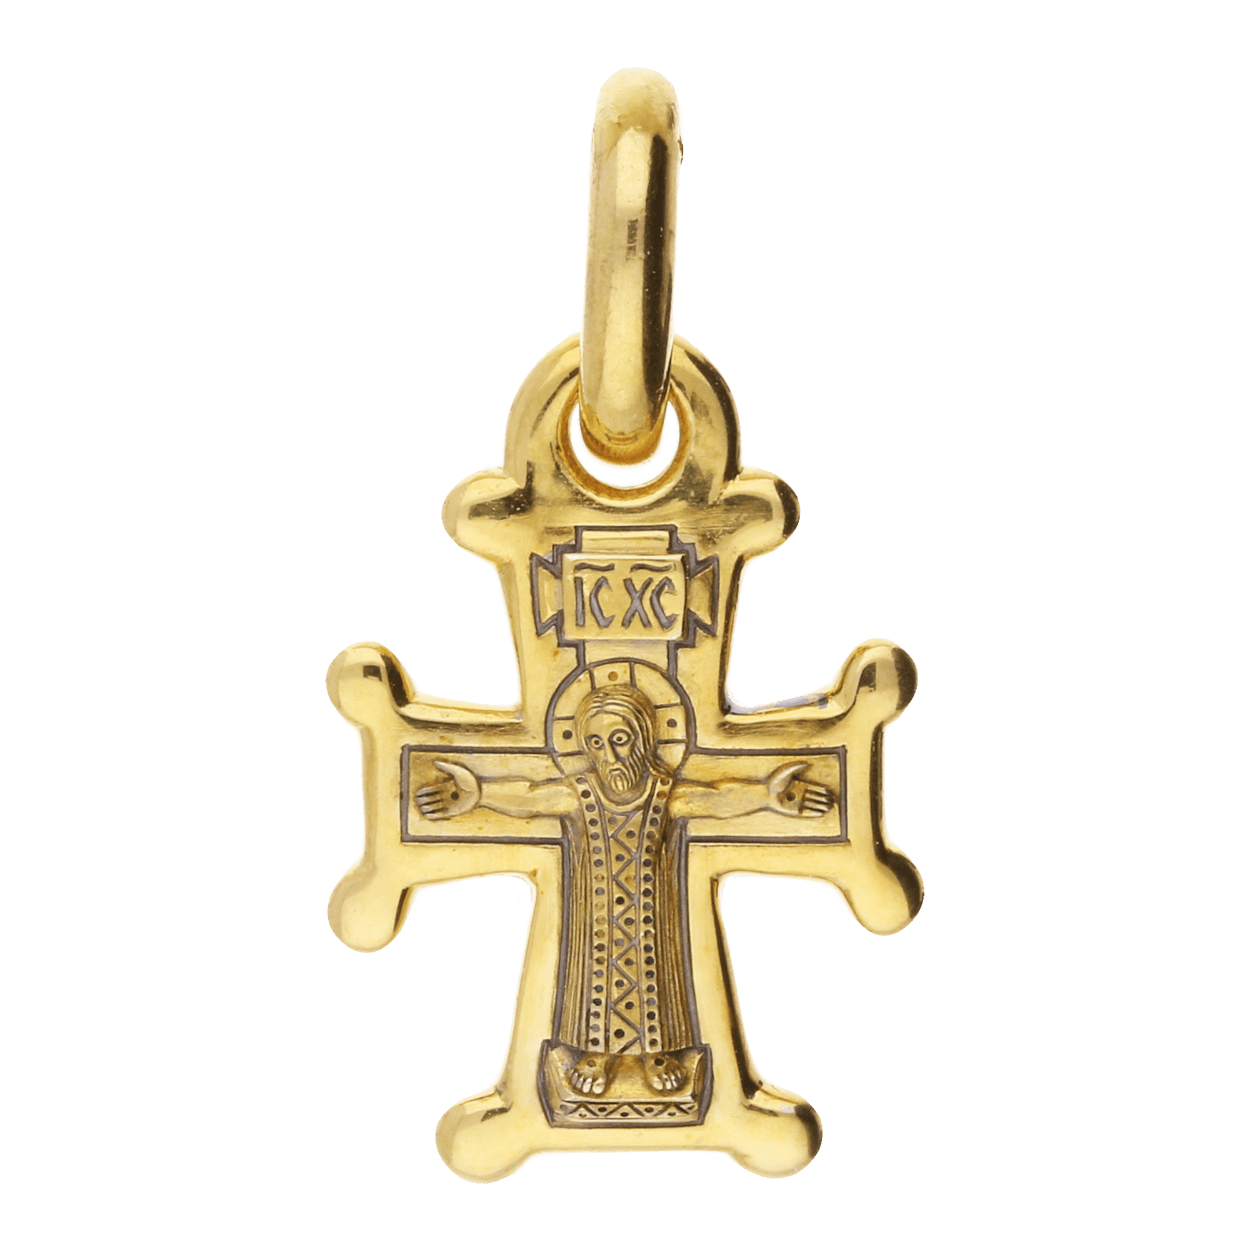 Russian Orthodox silver Cross pendant CRUCIFIXION THEOTOKOS ORANTA SYRIAN VERSION Master Jeweler Feodorov